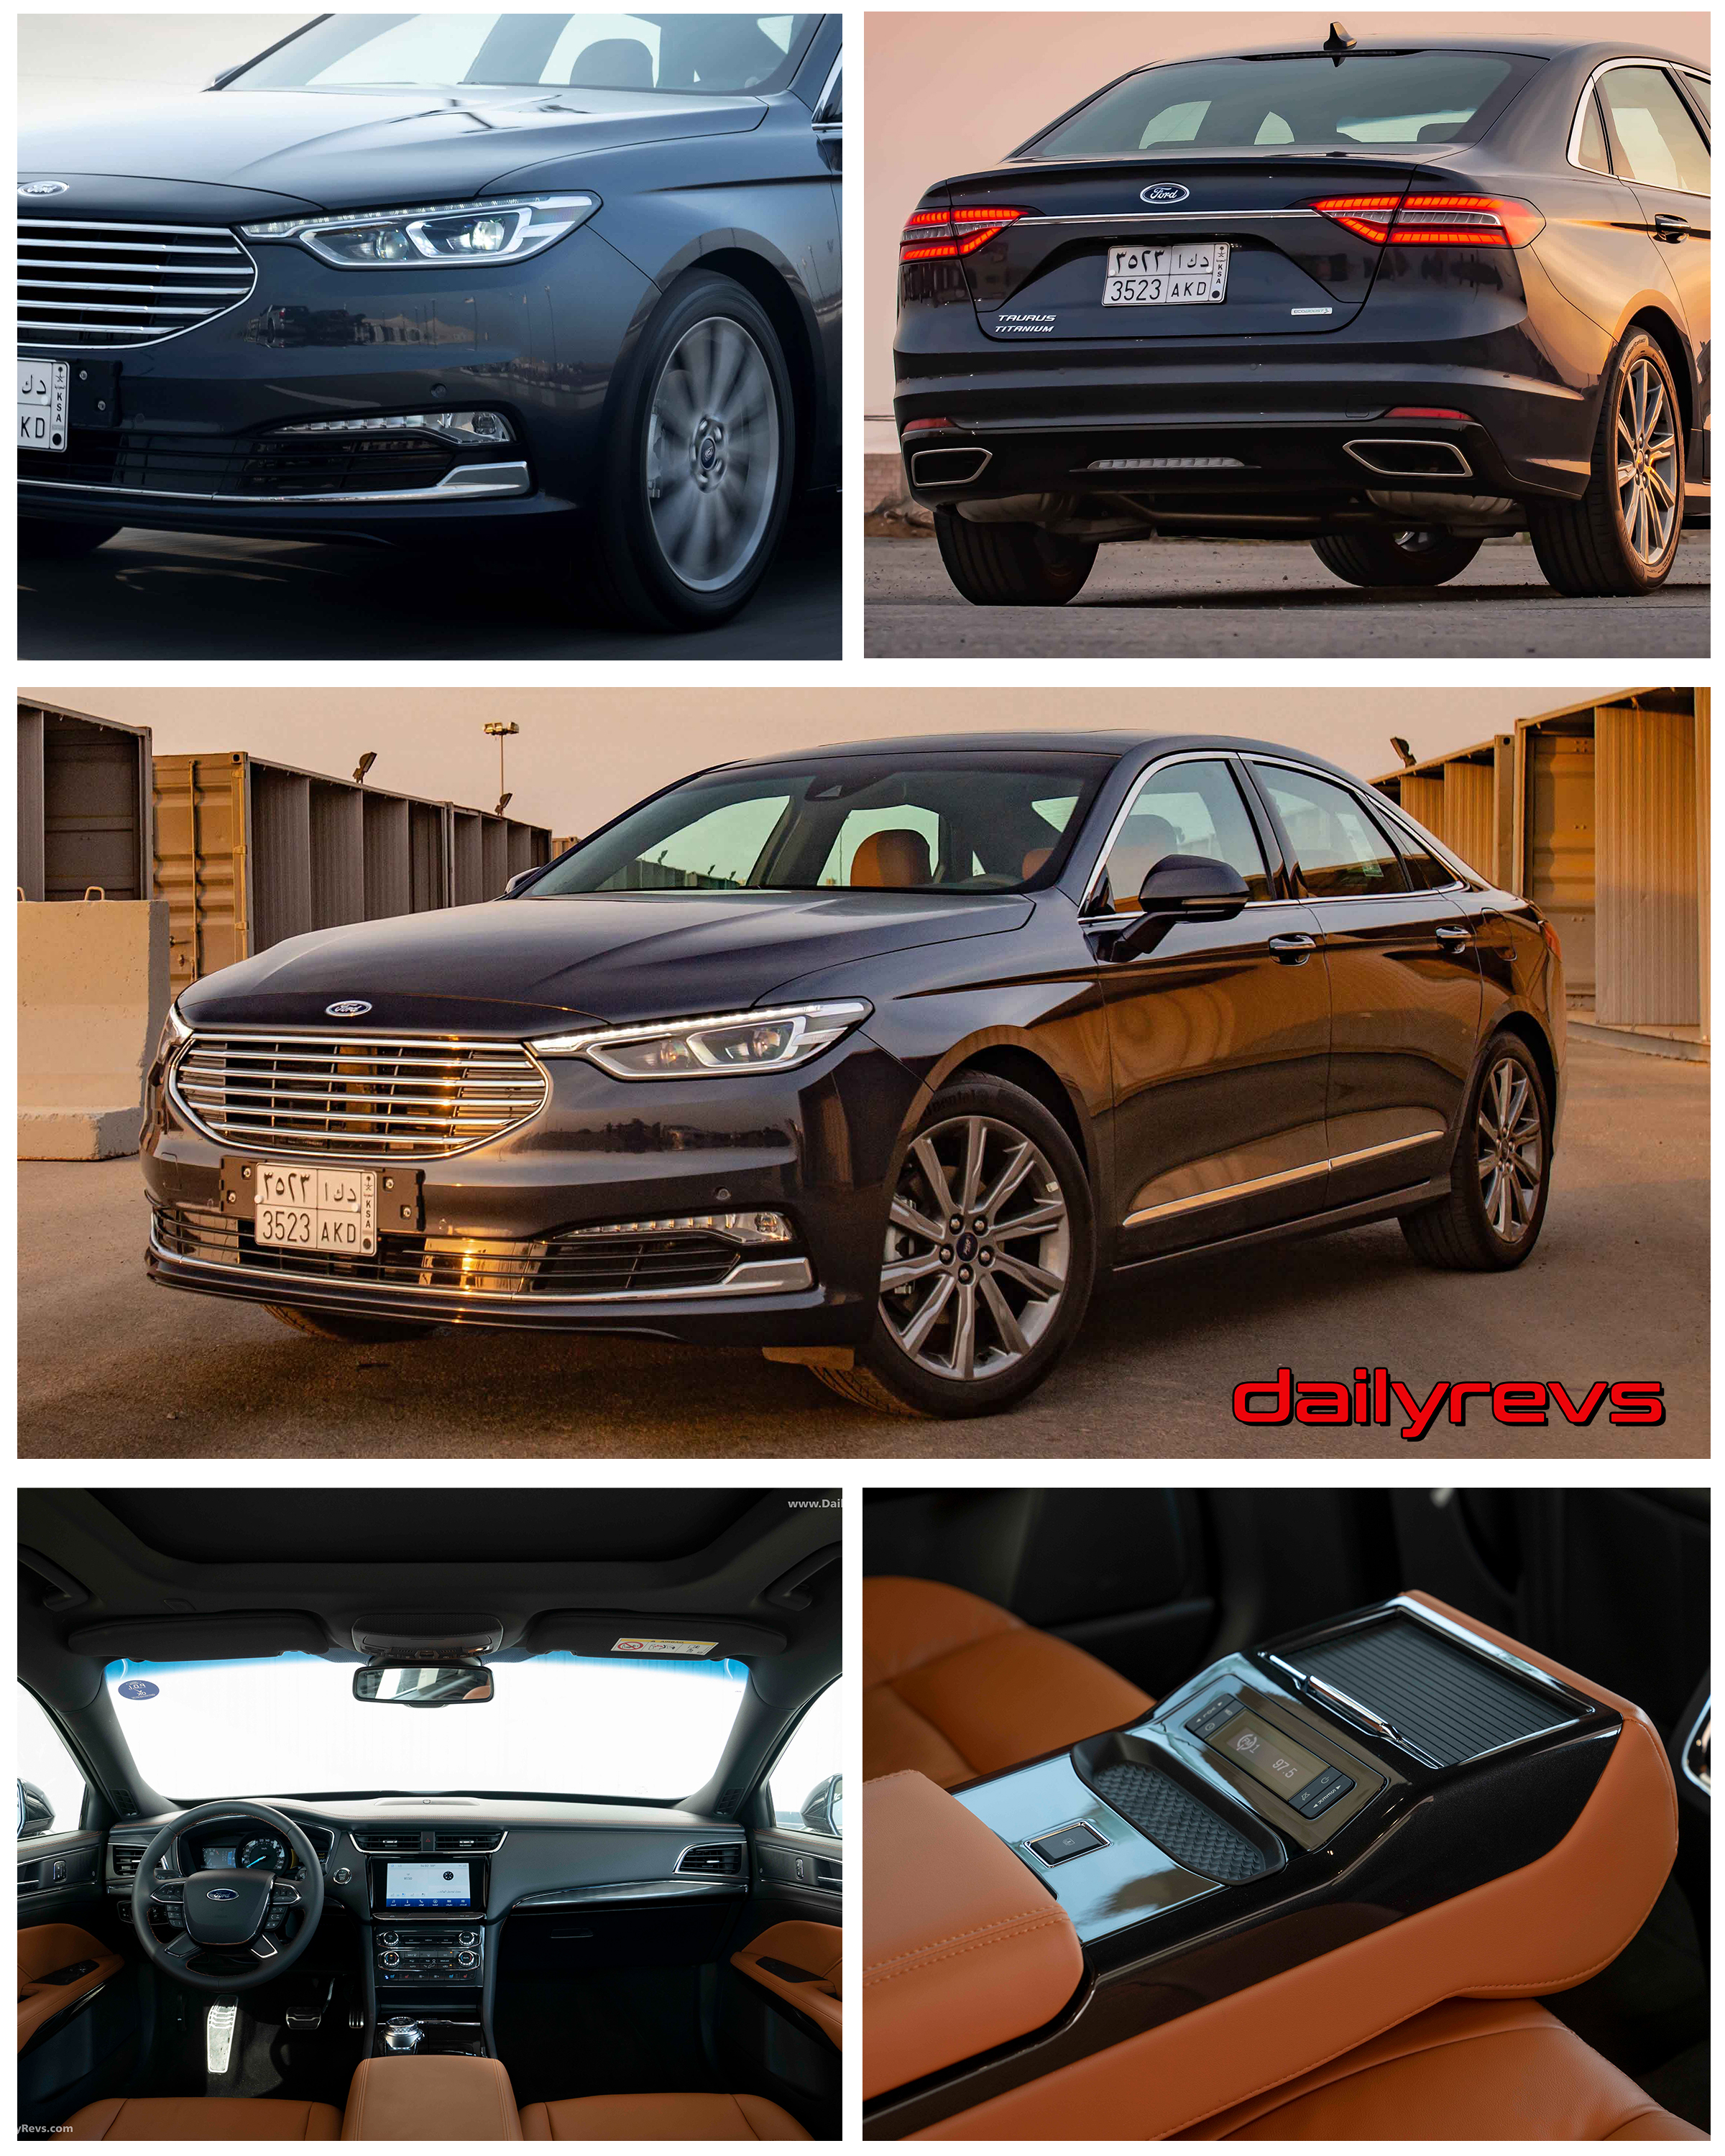 4 Ford Taurus - HD Pictures, Videos, Specs & Information